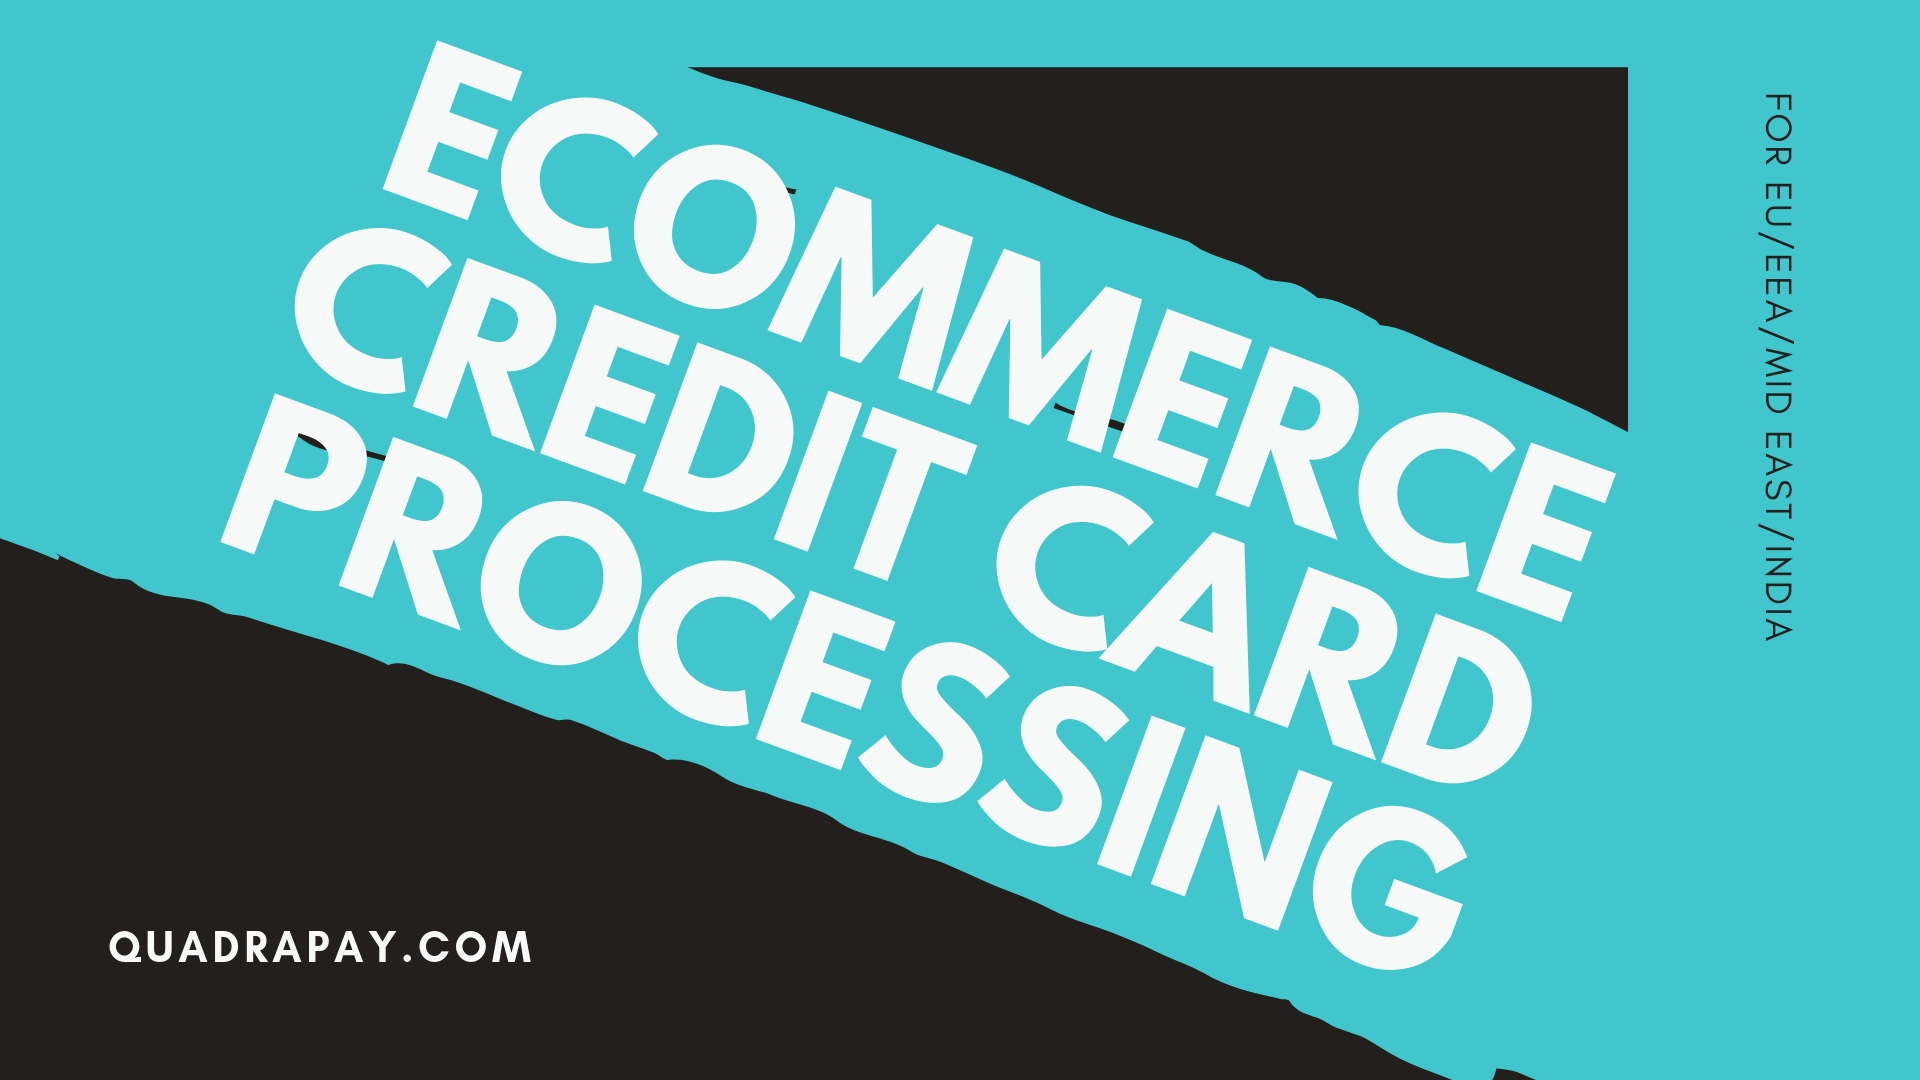 Ecommerce Credit Card Processing By Quadrapay